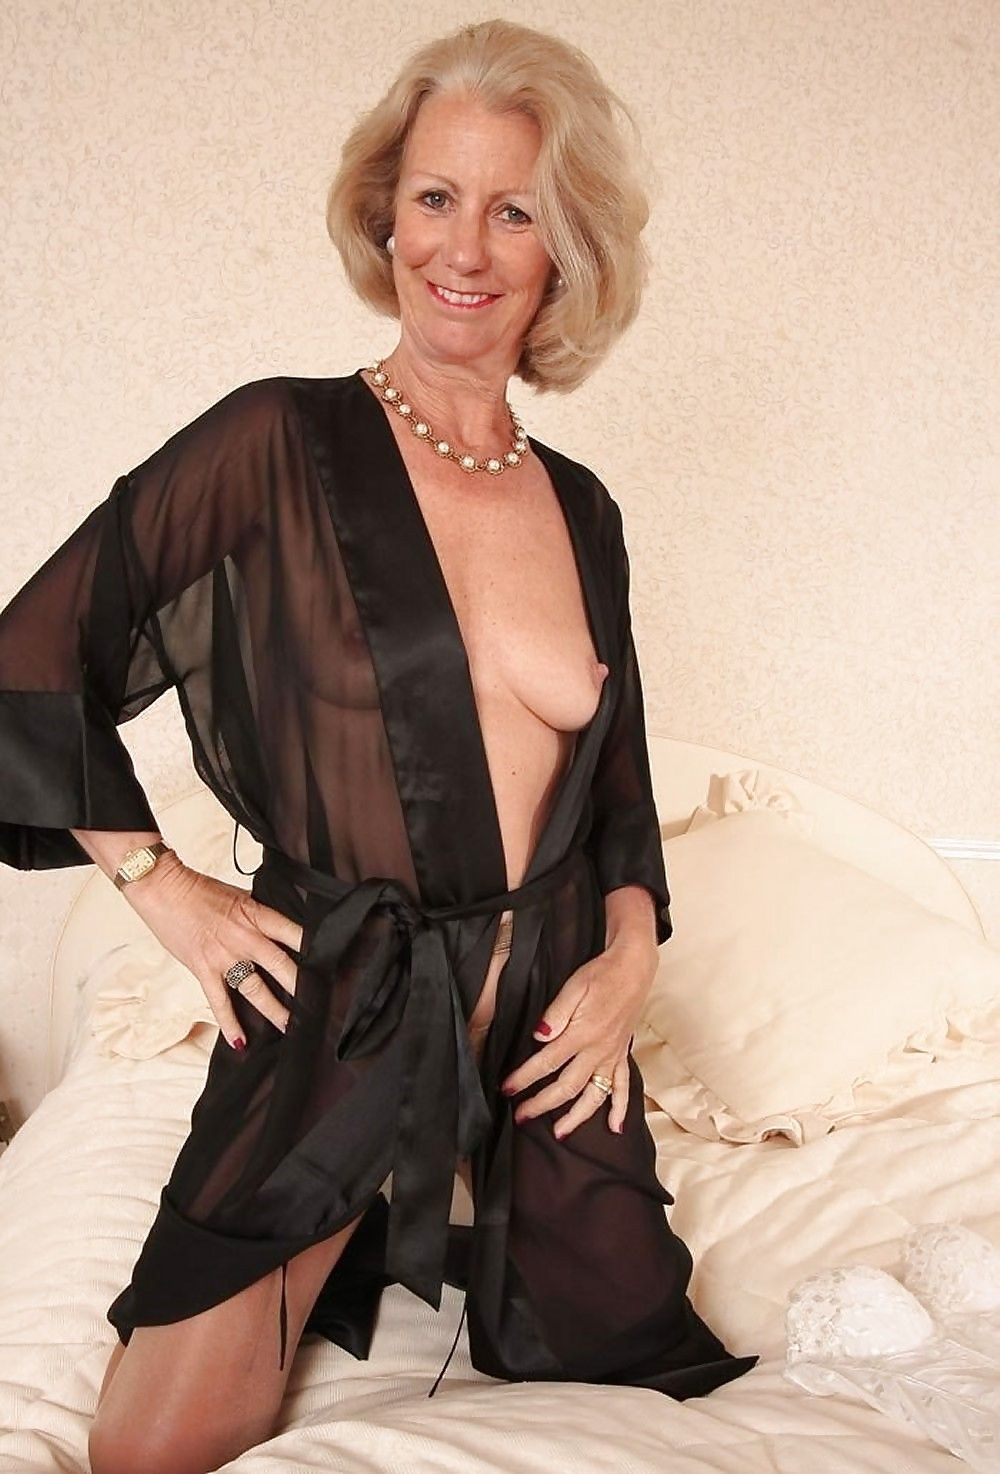 Mature Amateur Milf Tumblr